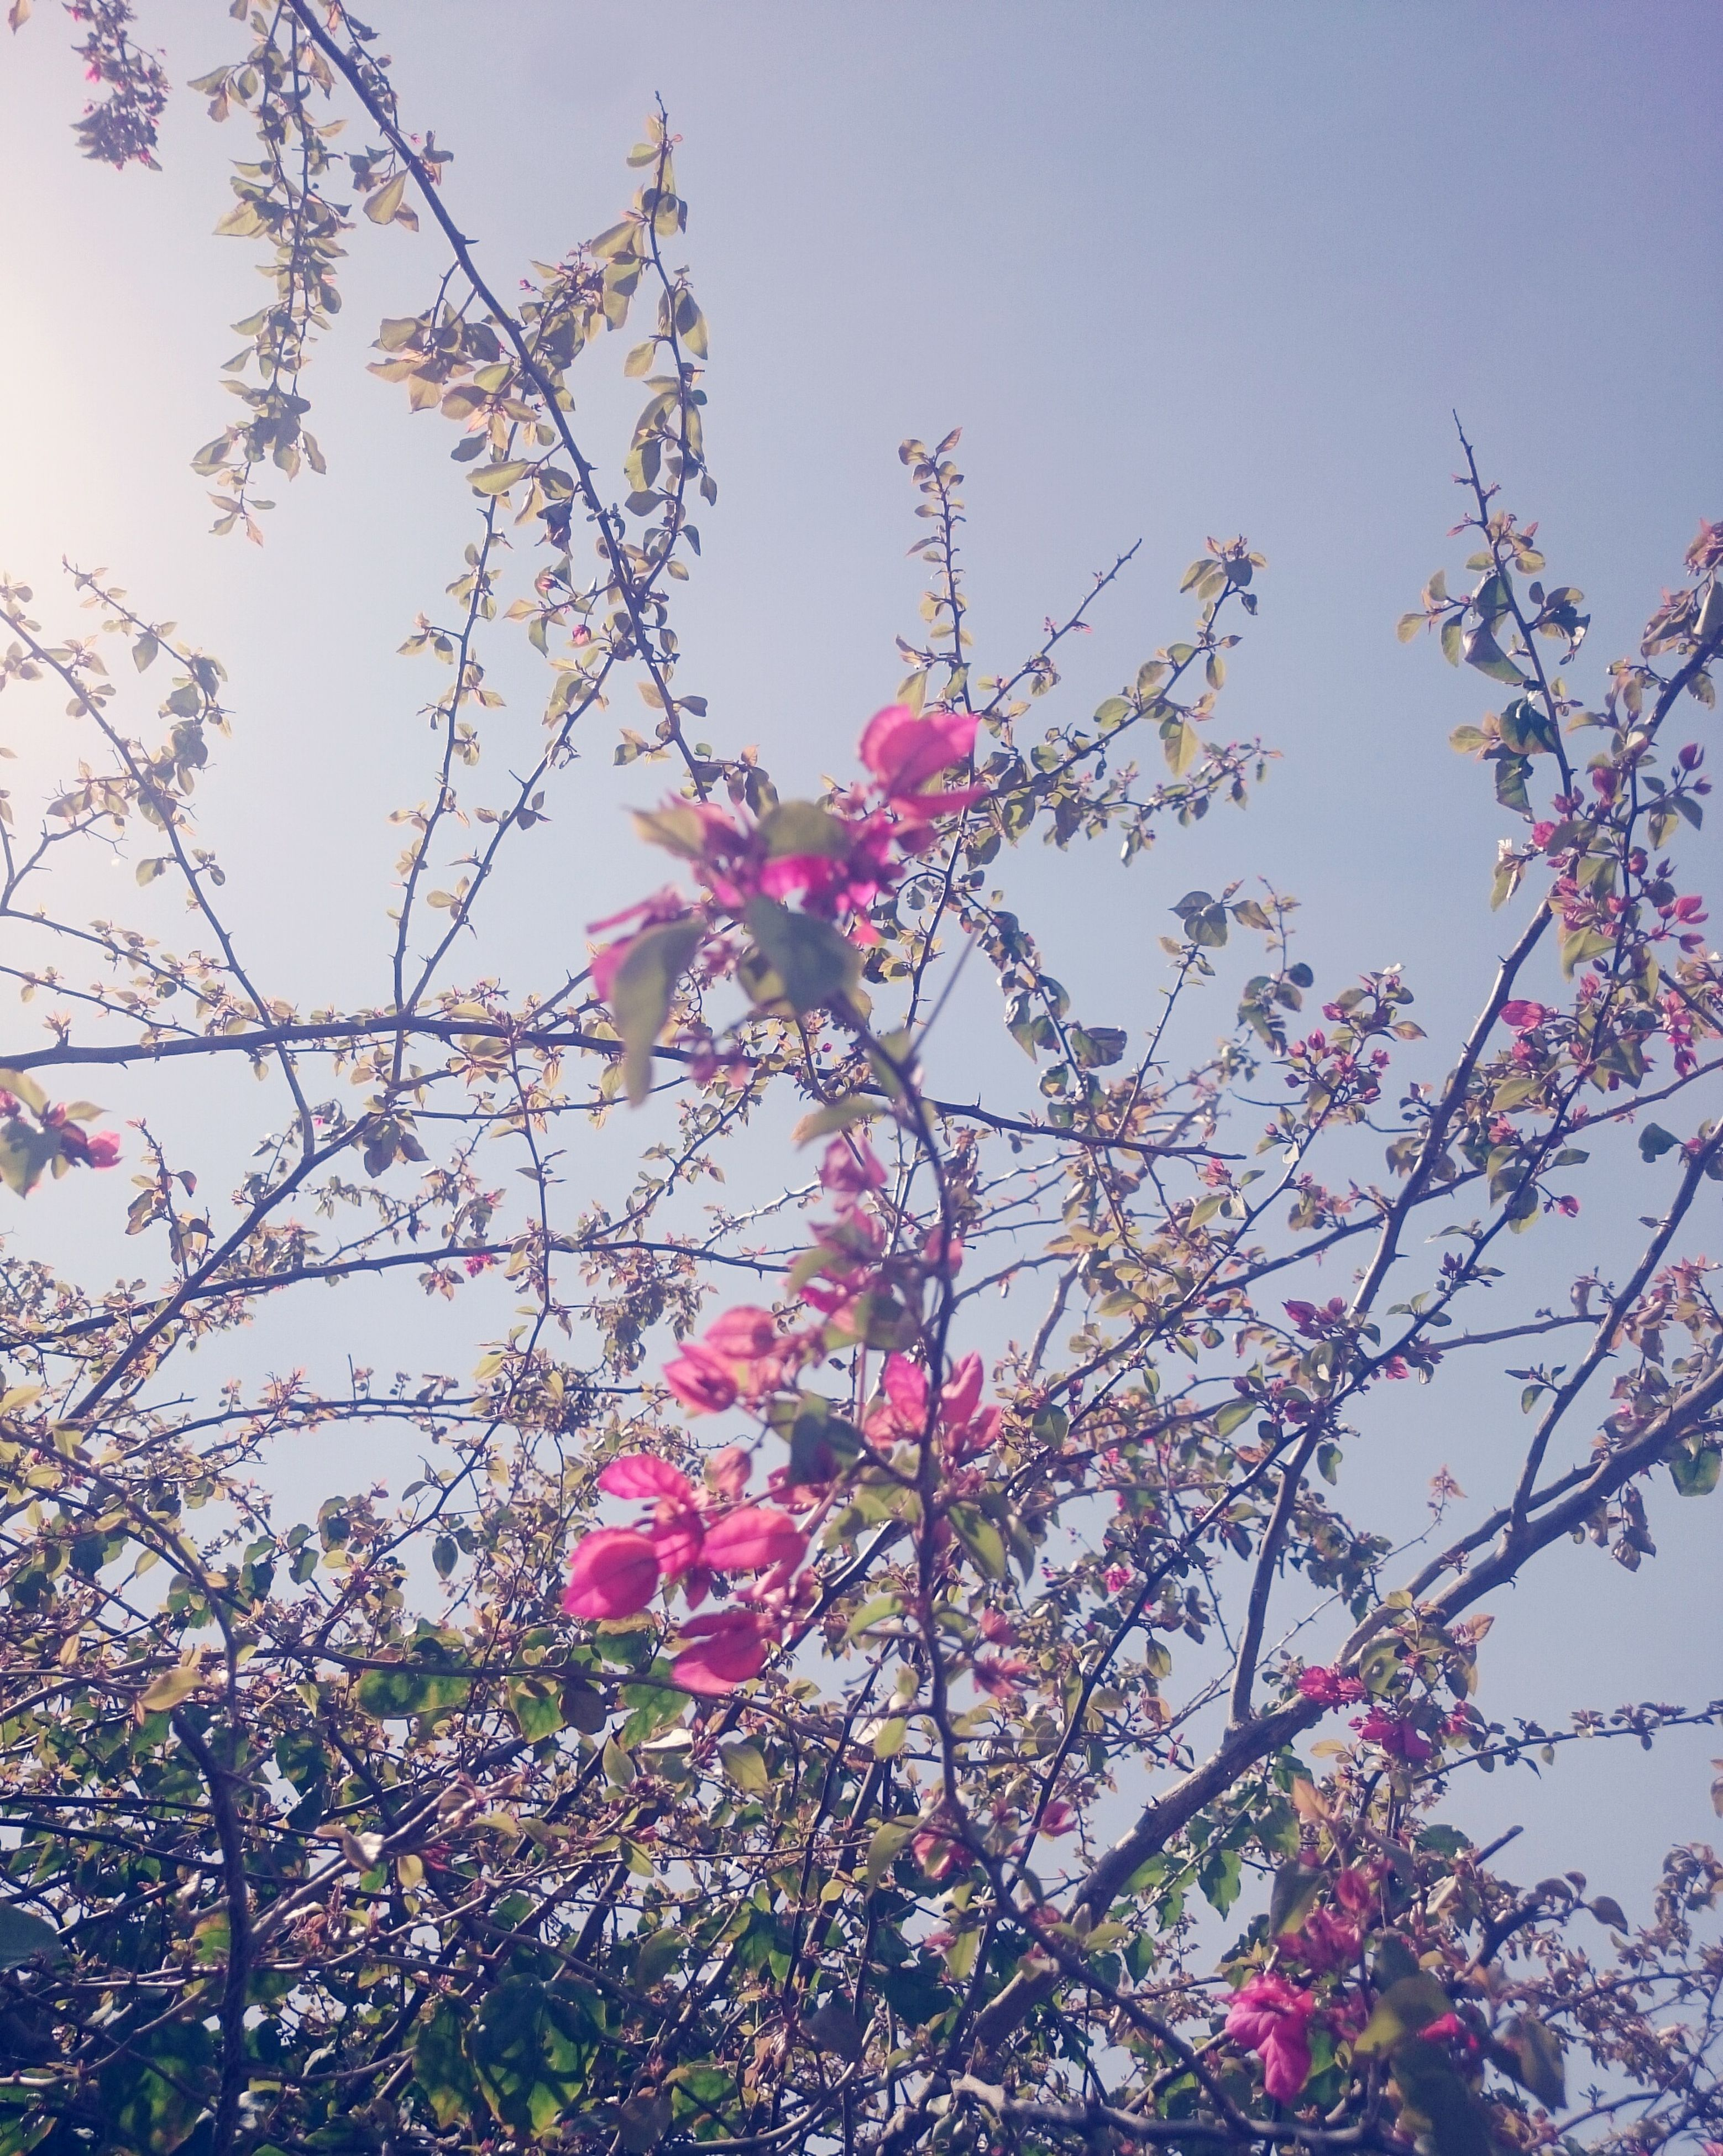 nature, pink color, growth, low angle view, flower, tree, beauty in nature, freshness, sky, branch, no people, outdoors, fragility, petal, day, springtime, blooming, clear sky, close-up, magnolia, plum blossom